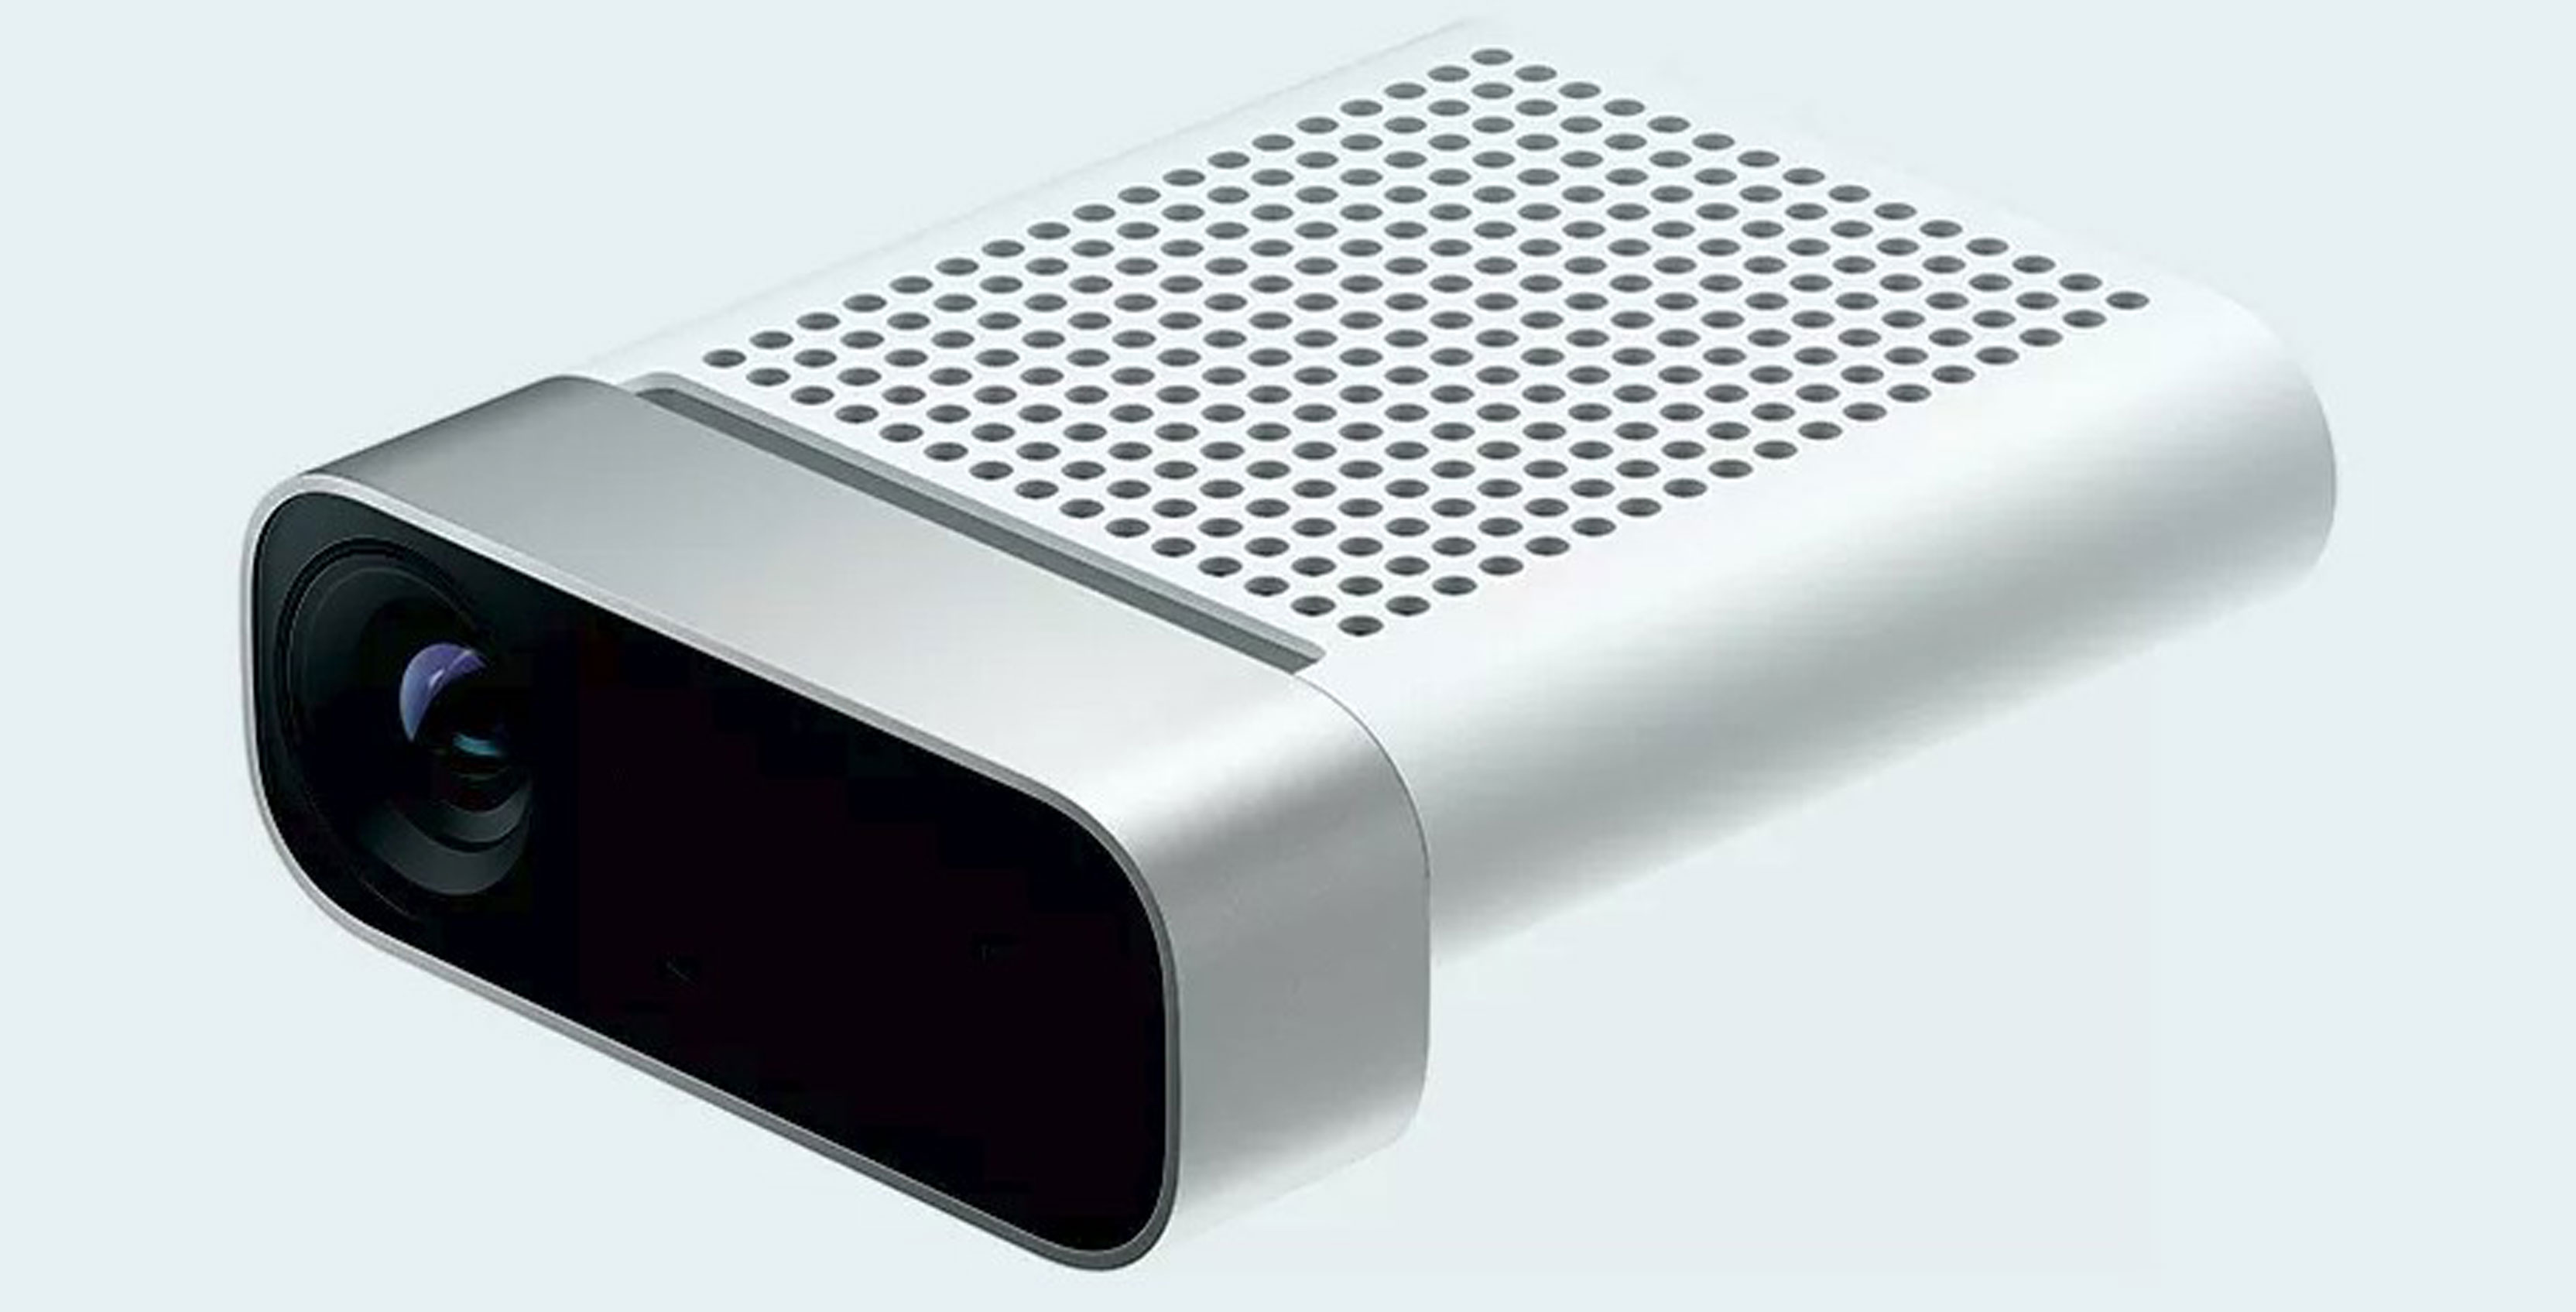 Microsoft's new Azure Kinect camera